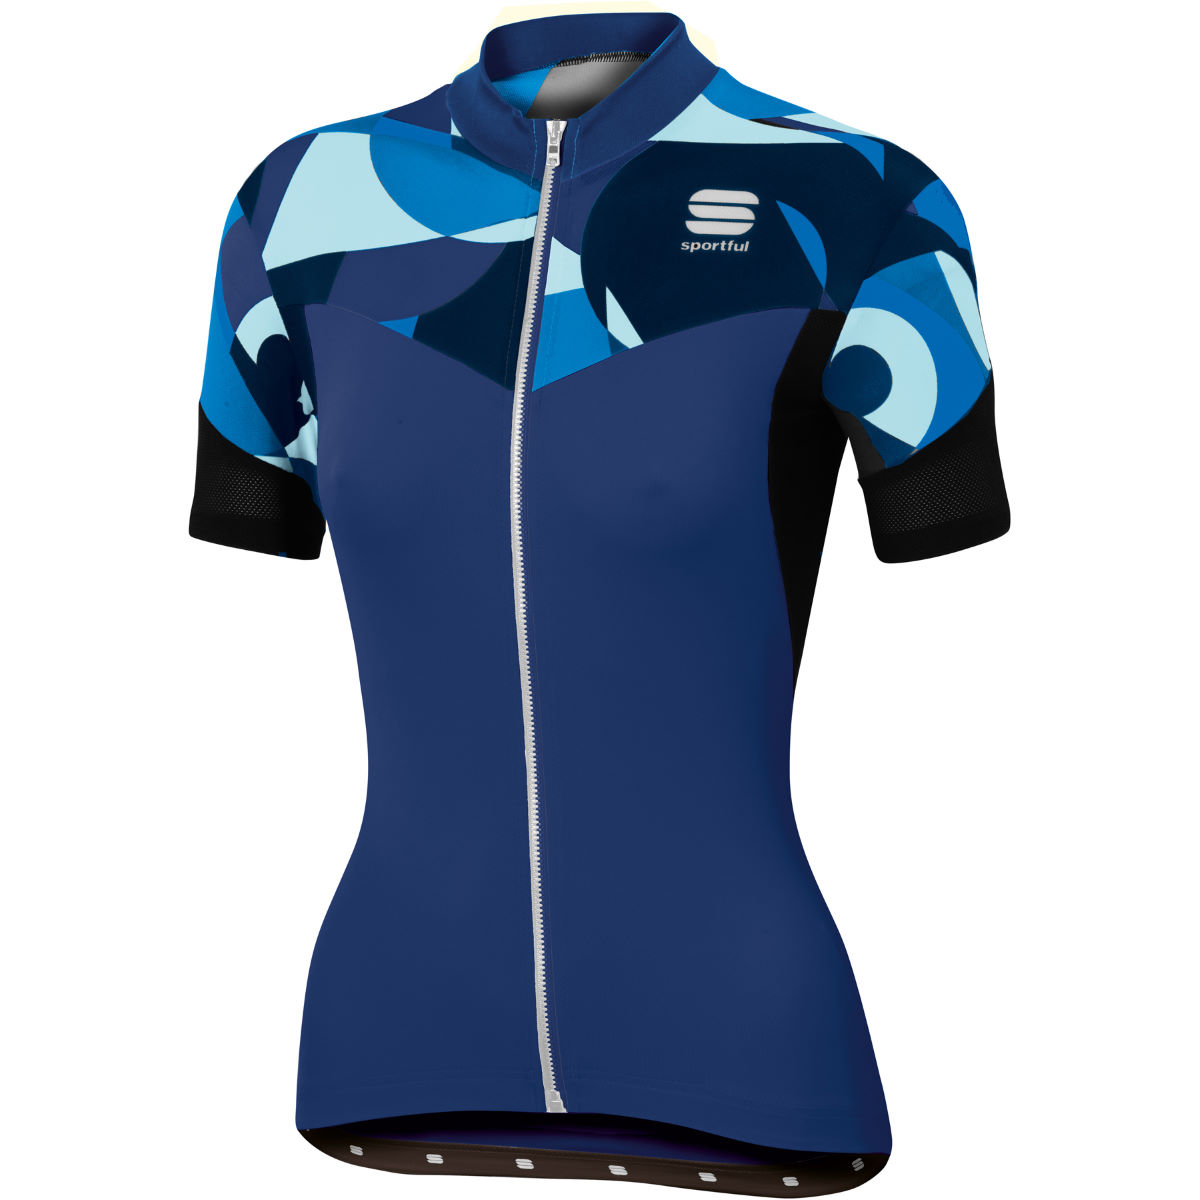 Maillot Femme Sportful Primavera - XL Blue Twilight/Electr Maillots